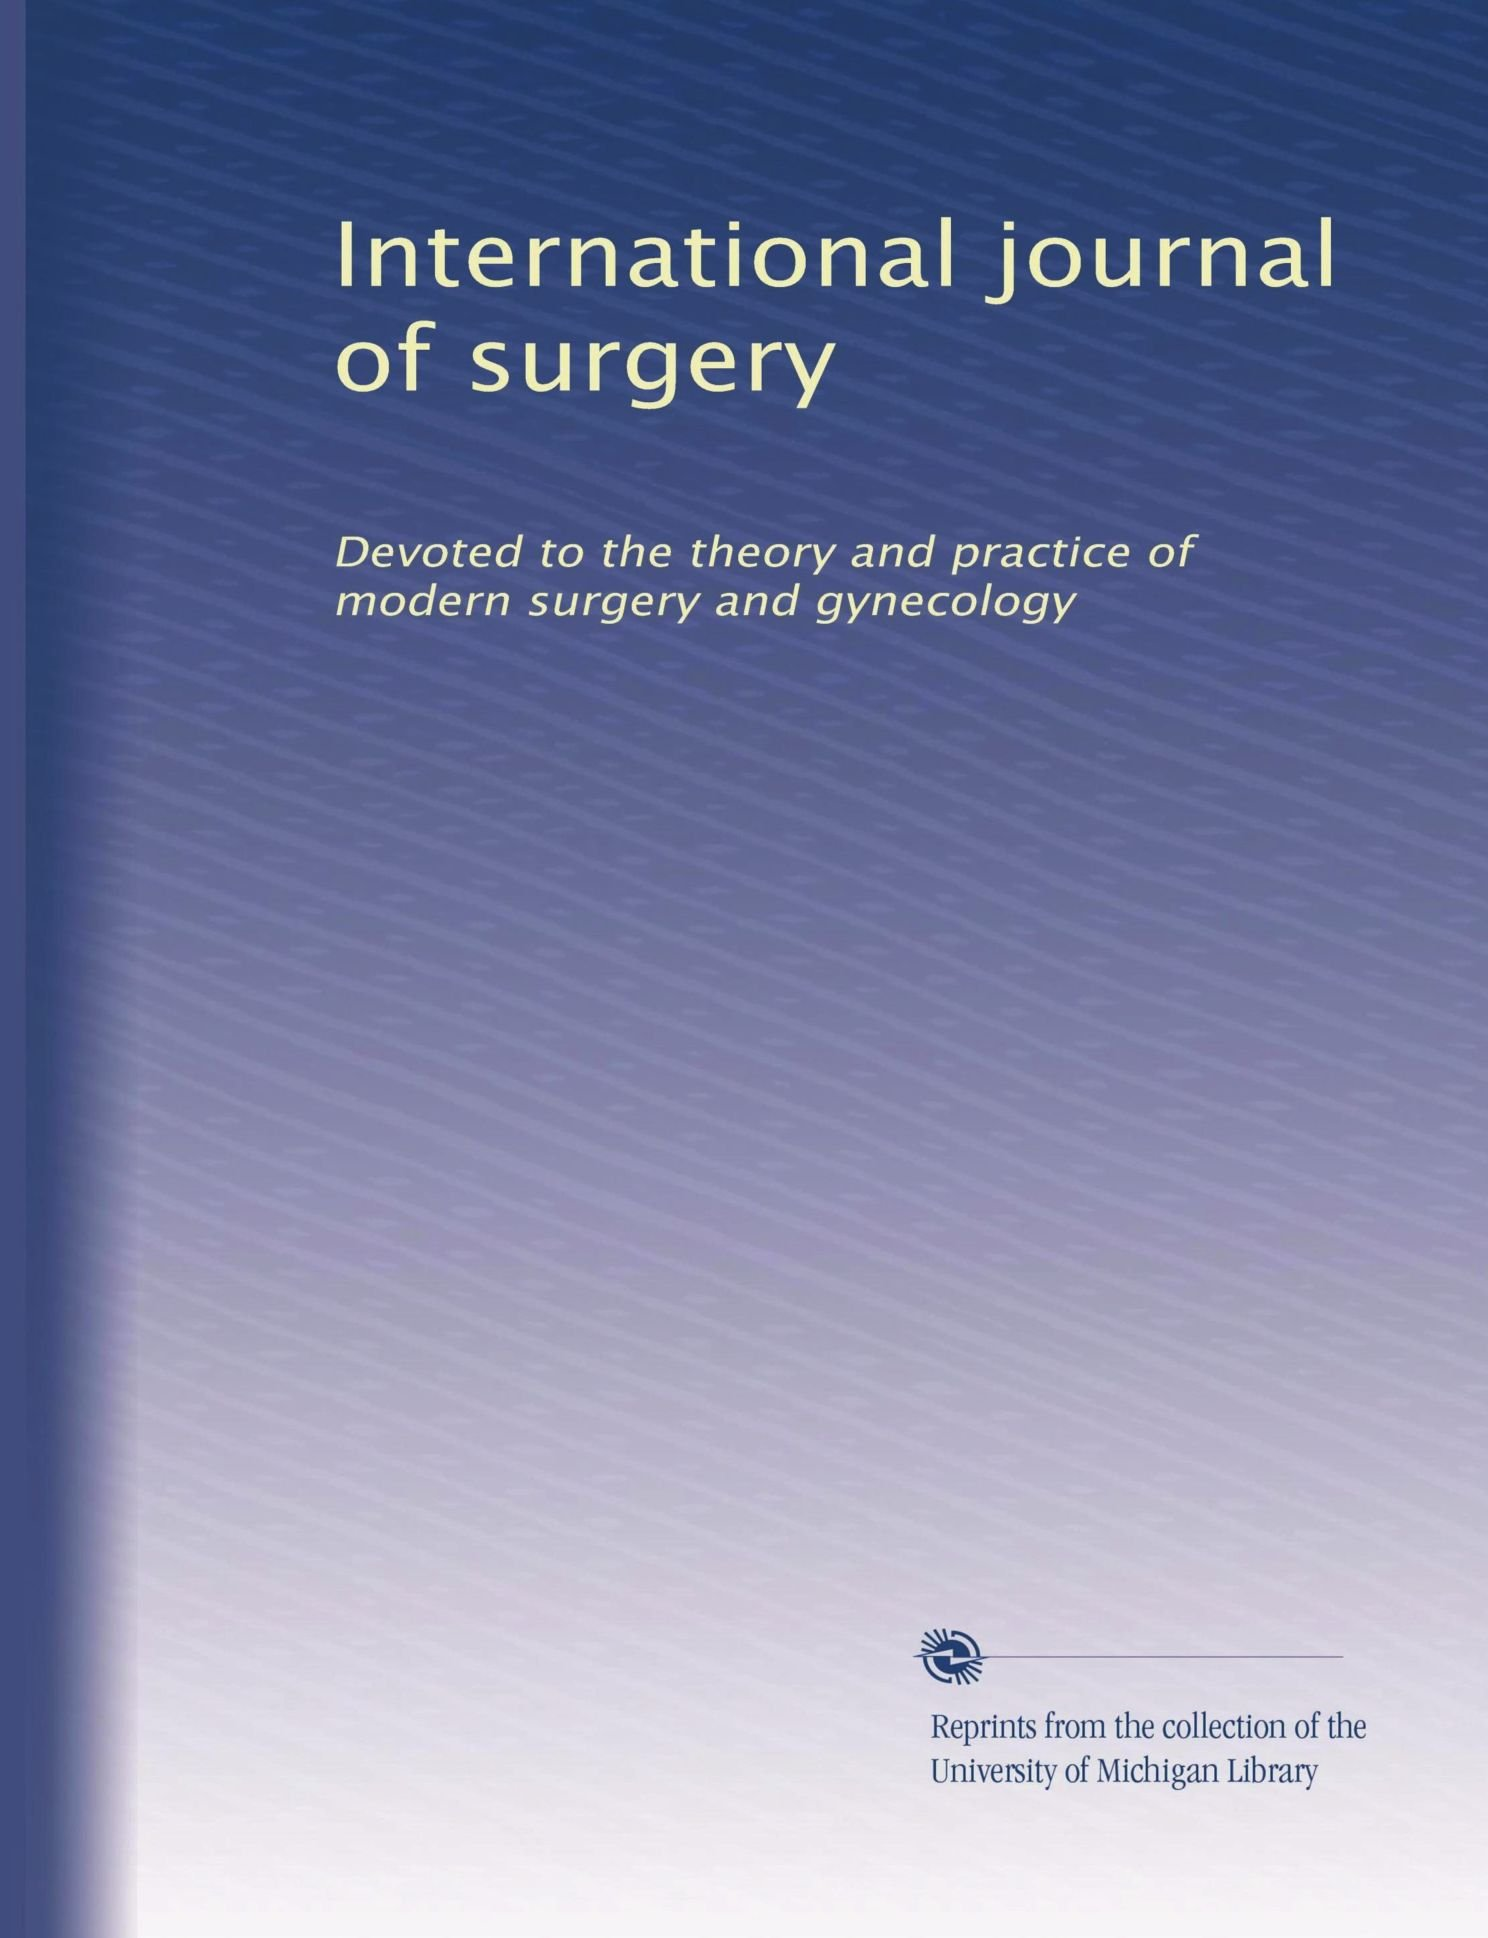 Download International journal of surgery: Devoted to the theory and practice of modern surgery and gynecology (Volume 8) pdf